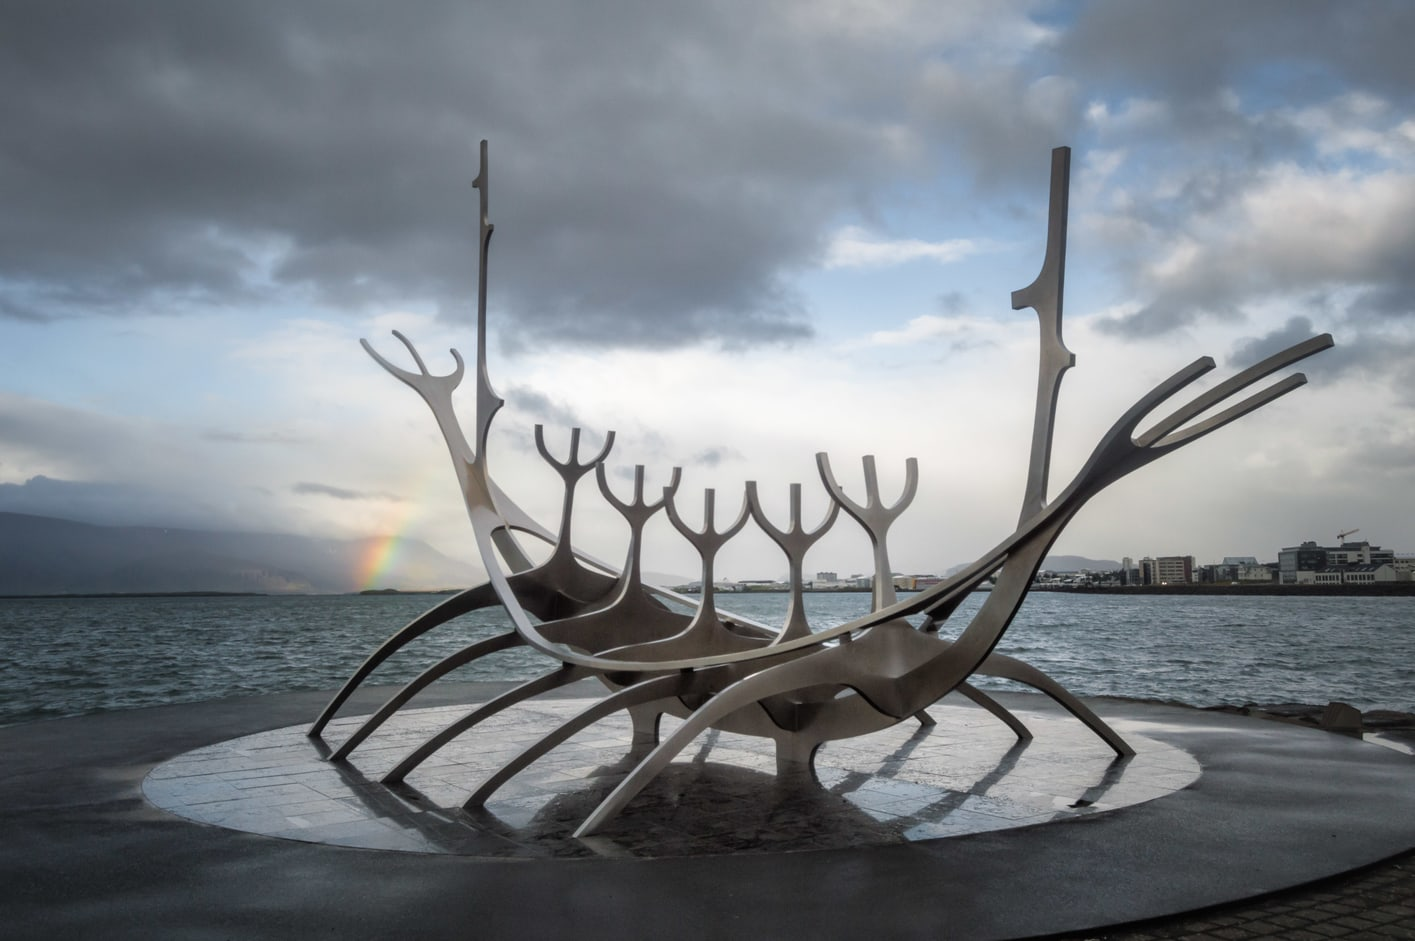 The Sun Voyager, an important thing to visit in Reykjavík